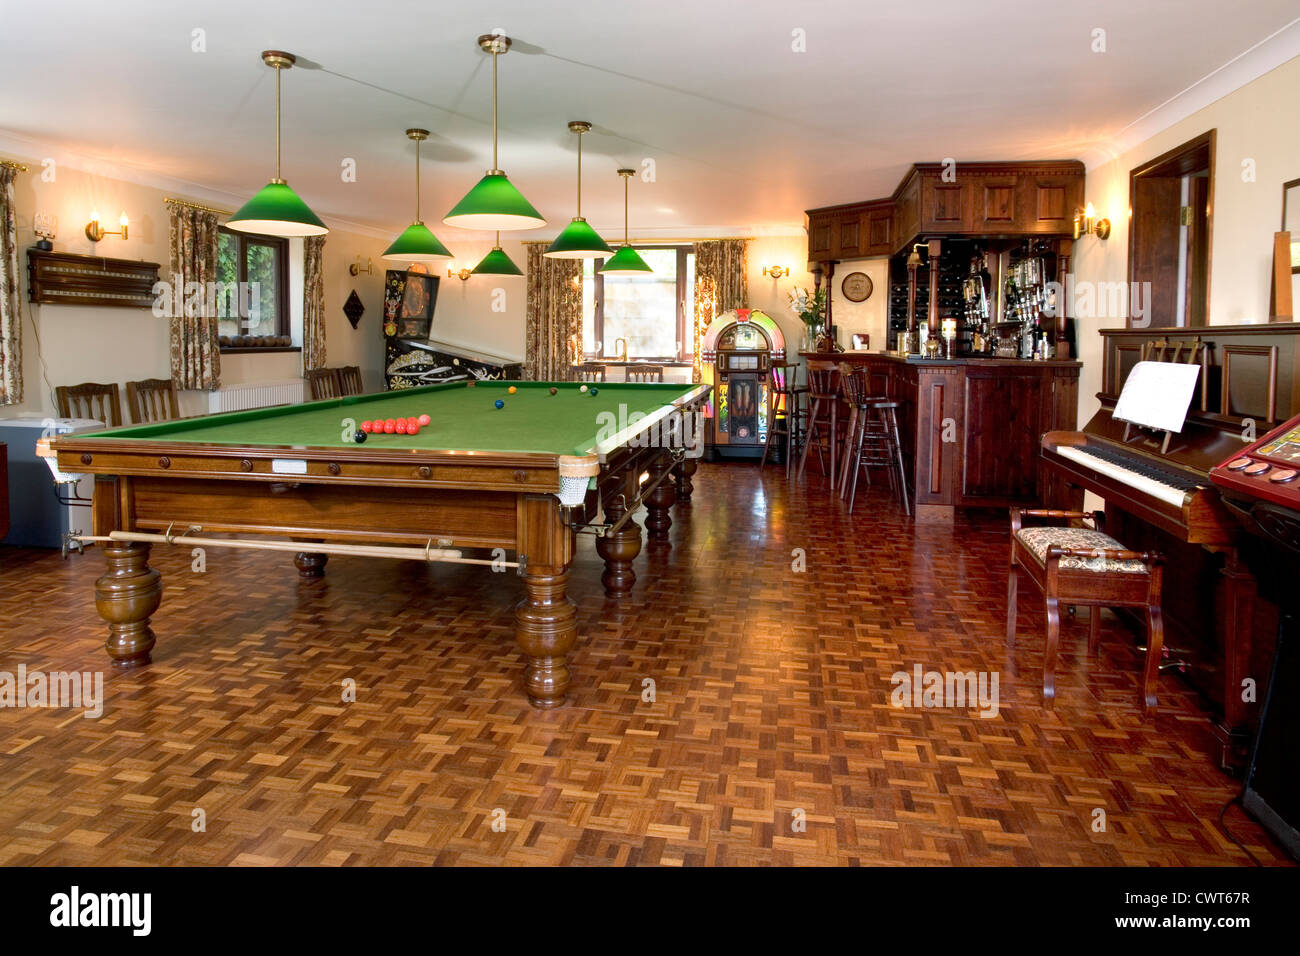 Home Games Room With Full Size Snooker Table Juke Box And Bar Stock - Bar box pool table size